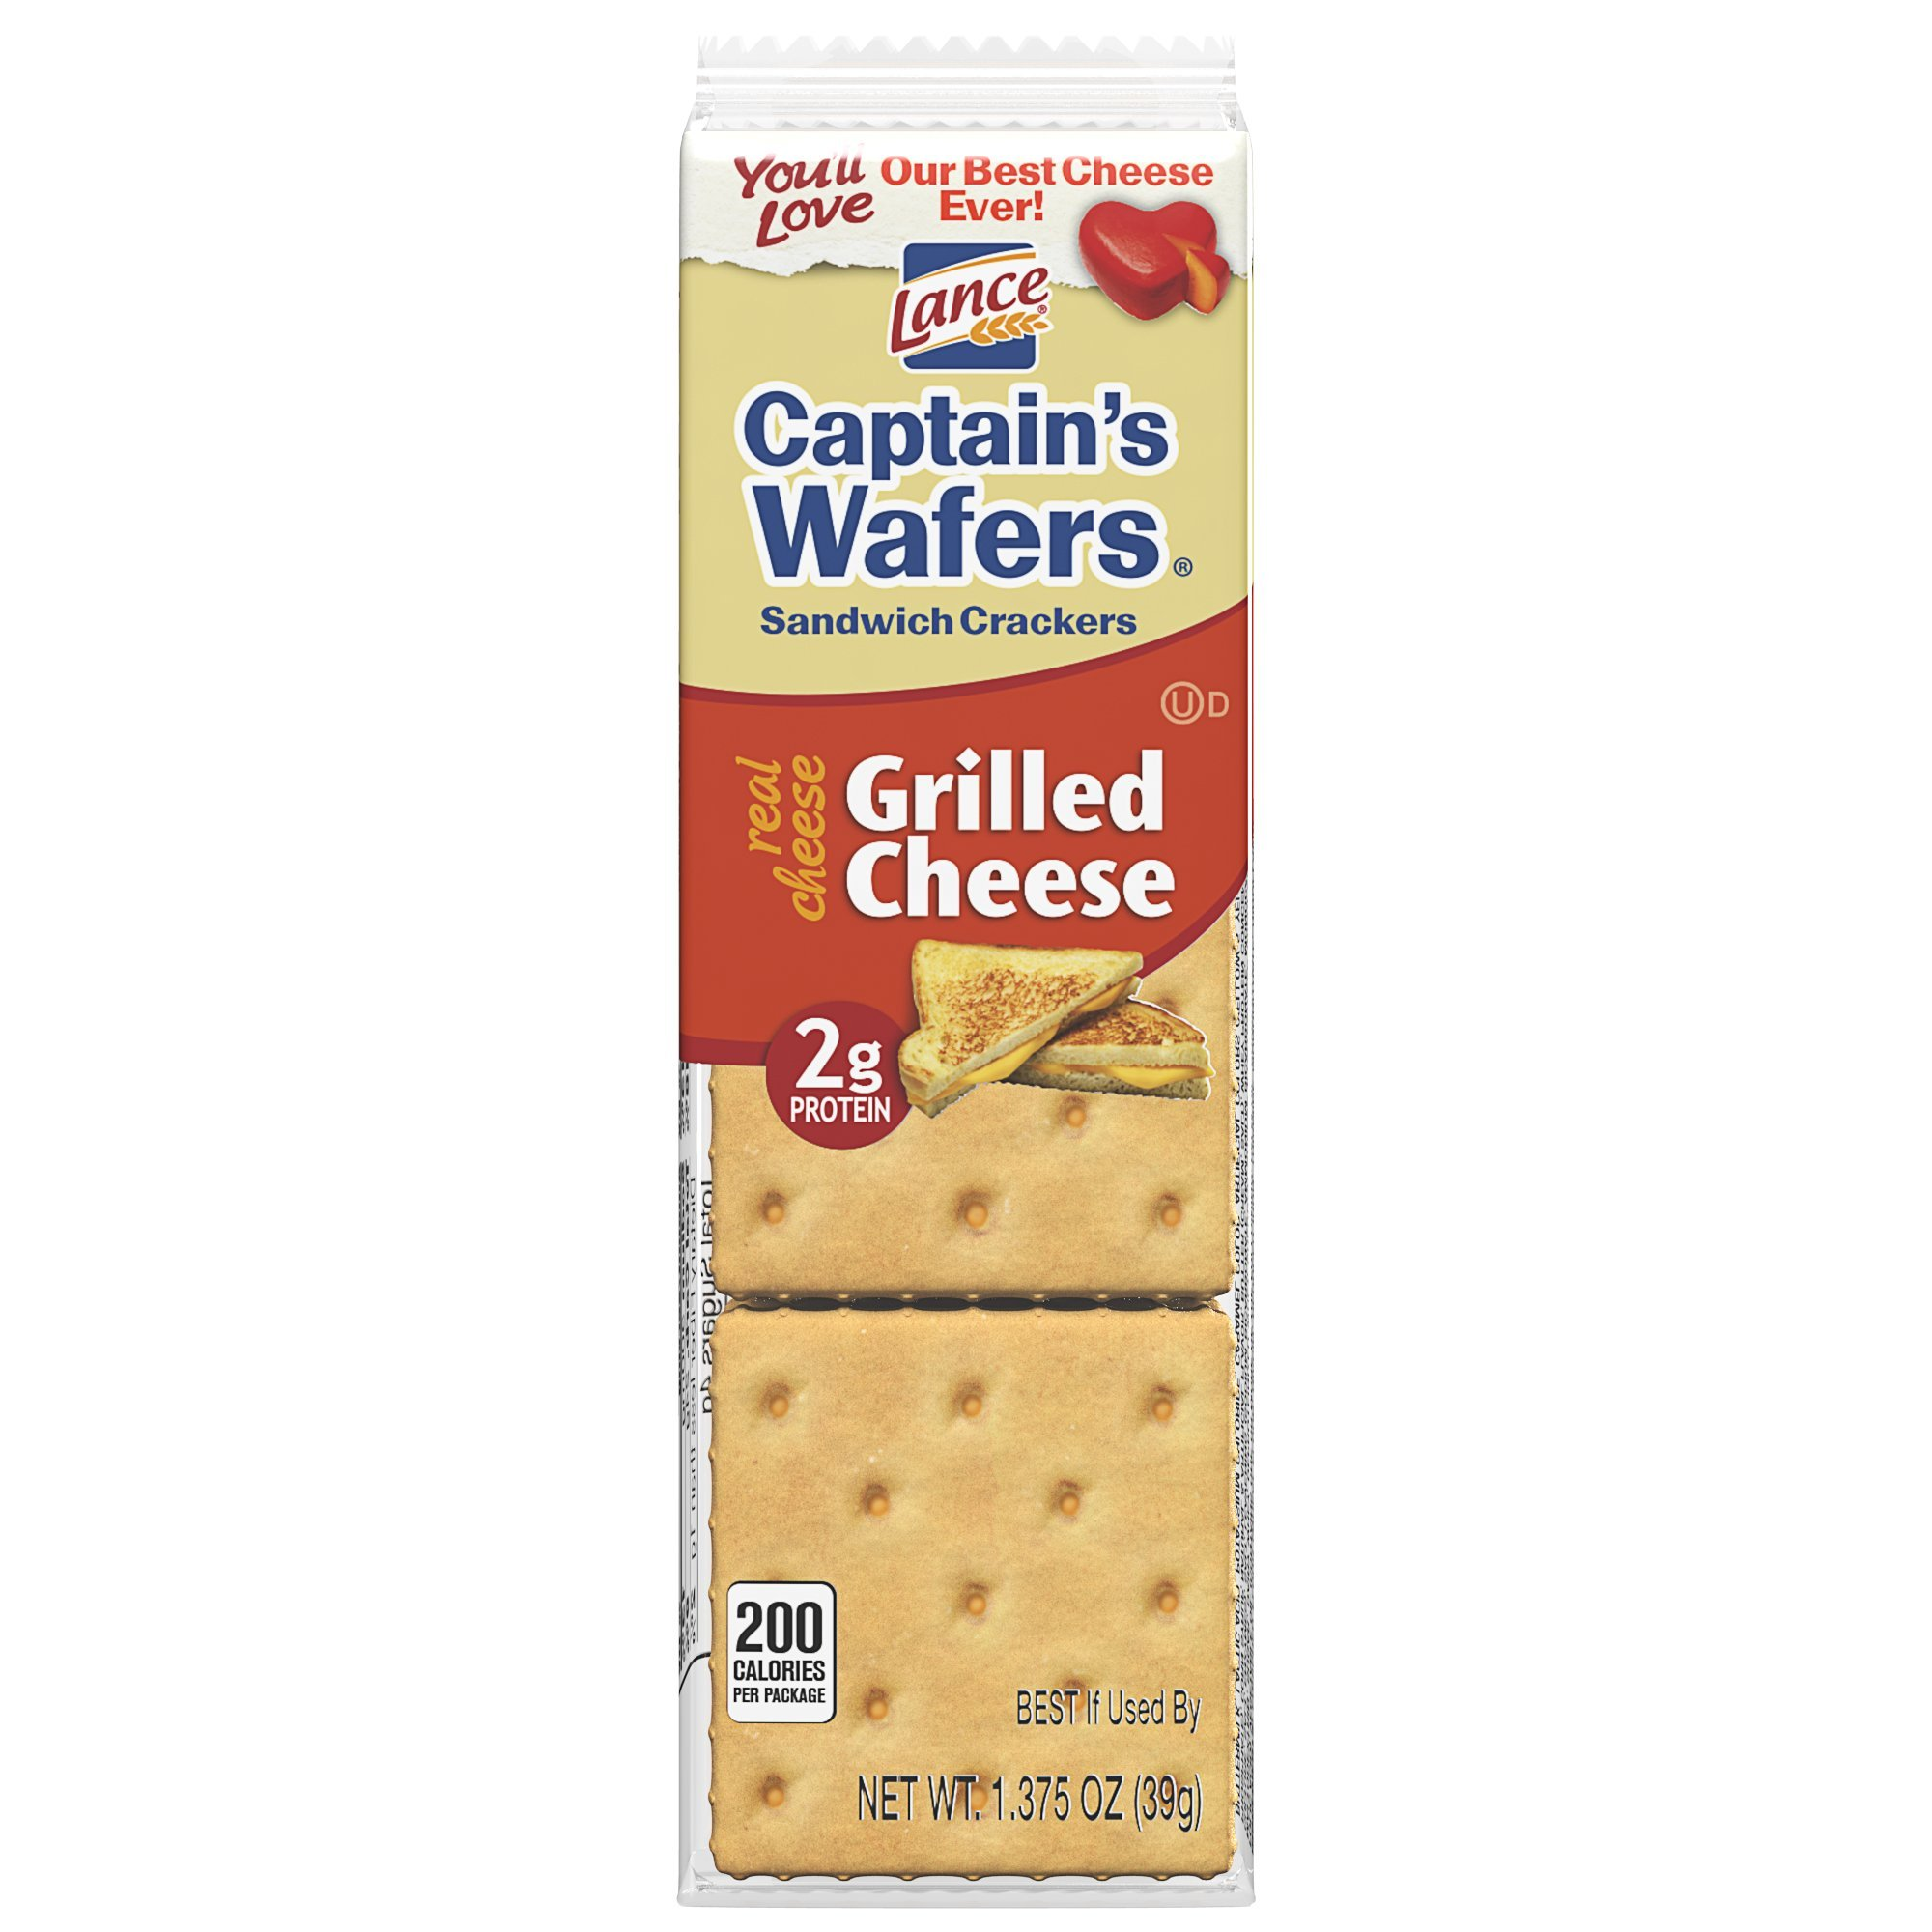 Lance Captain's Wafers Sandwich Crackers, Grilled Cheese, 1.375 Ounce (Pack of 120) by Lance